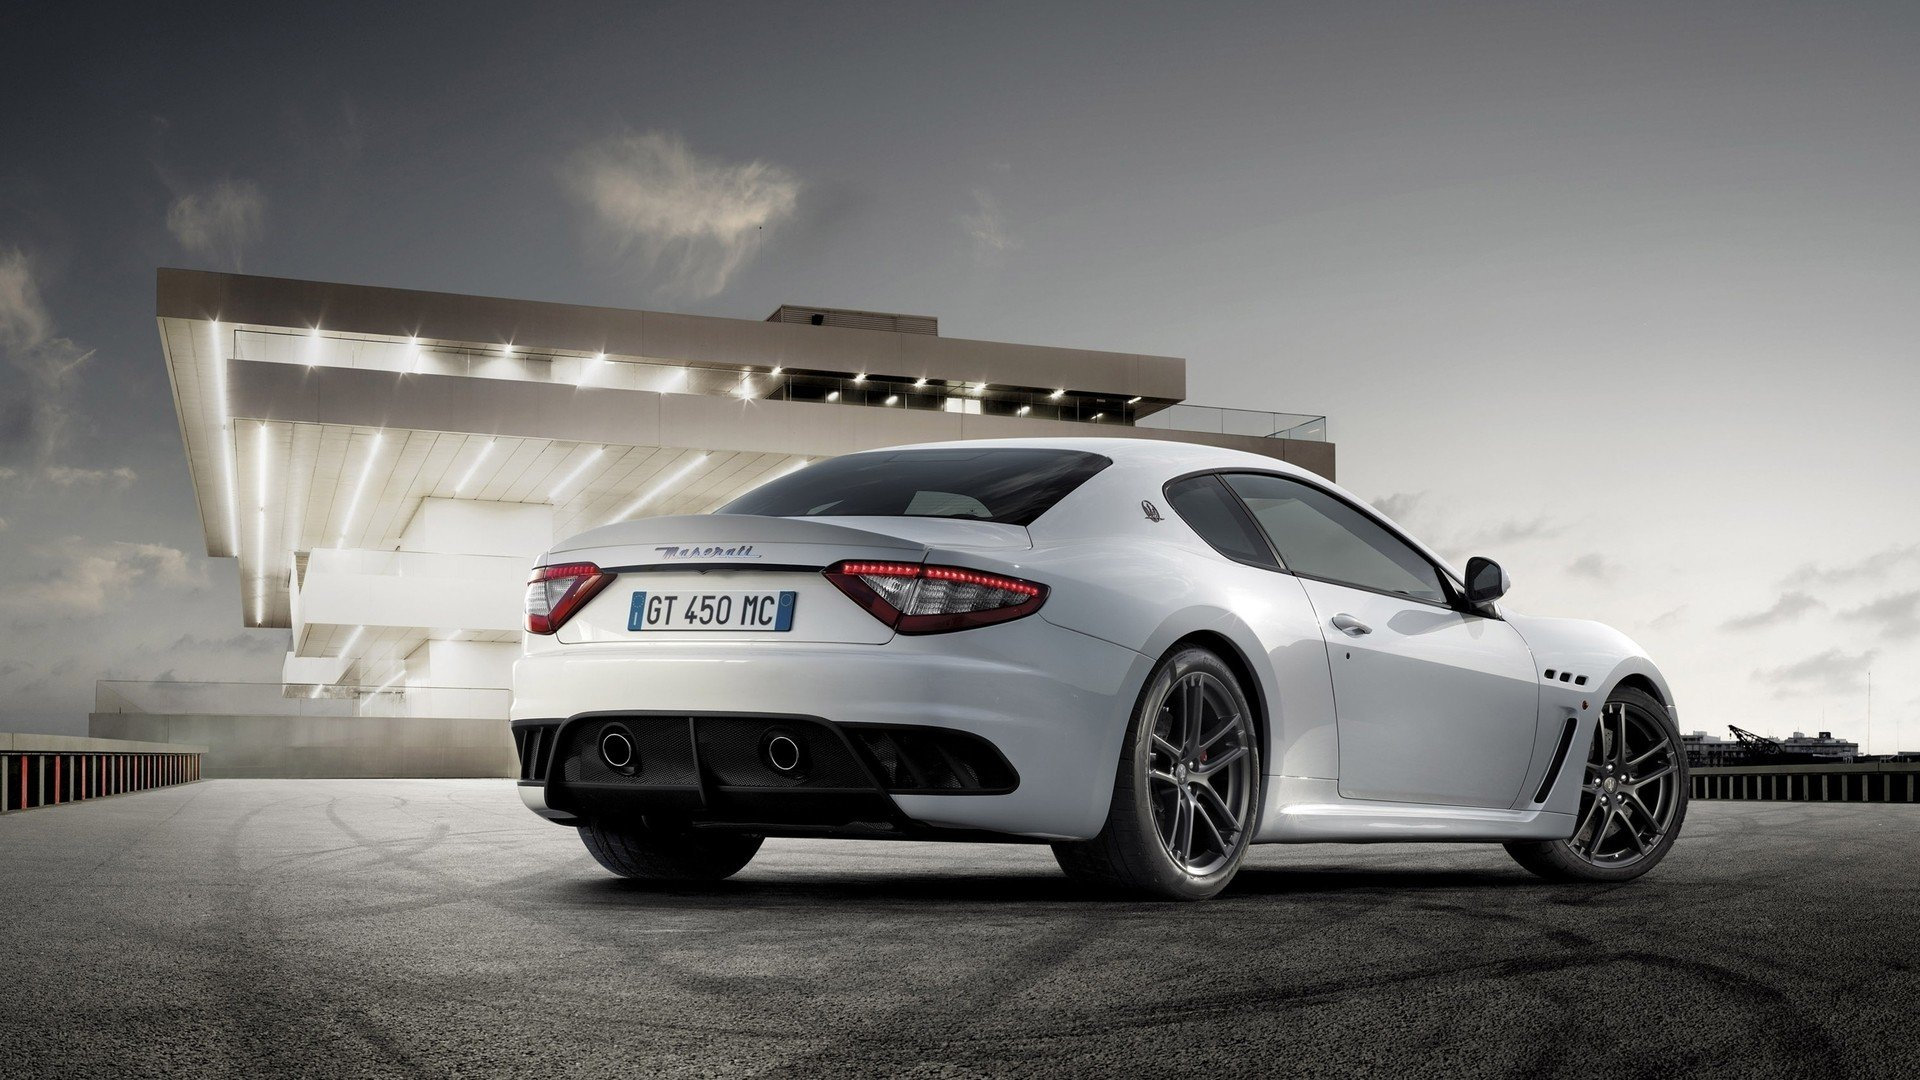 Free Maserati high quality wallpaper ID:398966 for hd 1080p PC